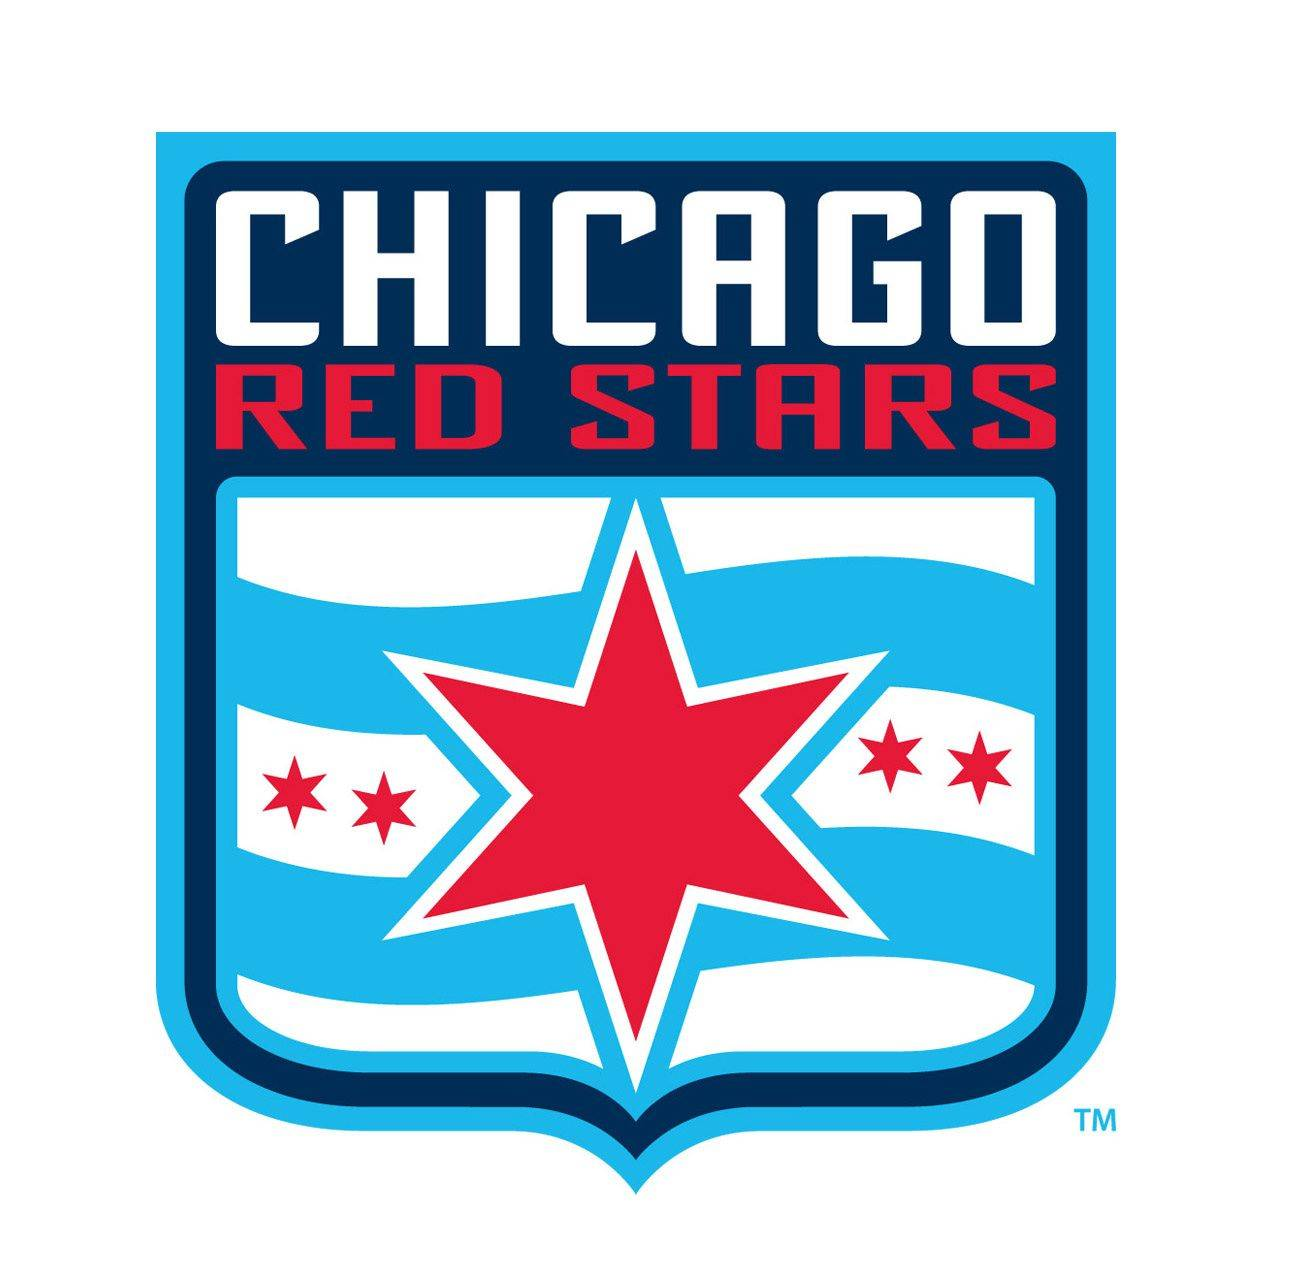 The Chicago Red Stars are sitting out this season of the Women's Professional Soccer, but the owners have revived the team to play in the semipro Women's Premier Soccer League.